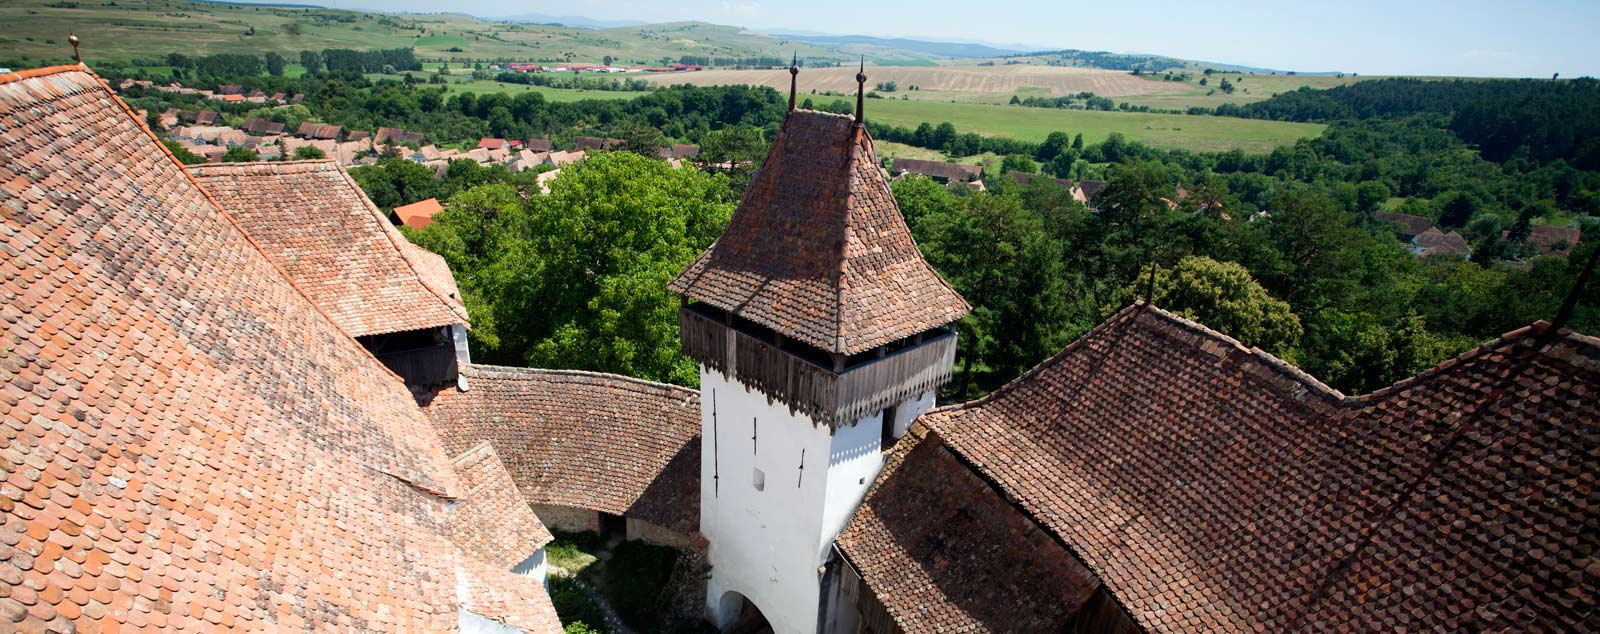 A Transylvanian Saxon Citadel showing a tall white tower and ramparts topped by steep roofs covered in circular red tiles